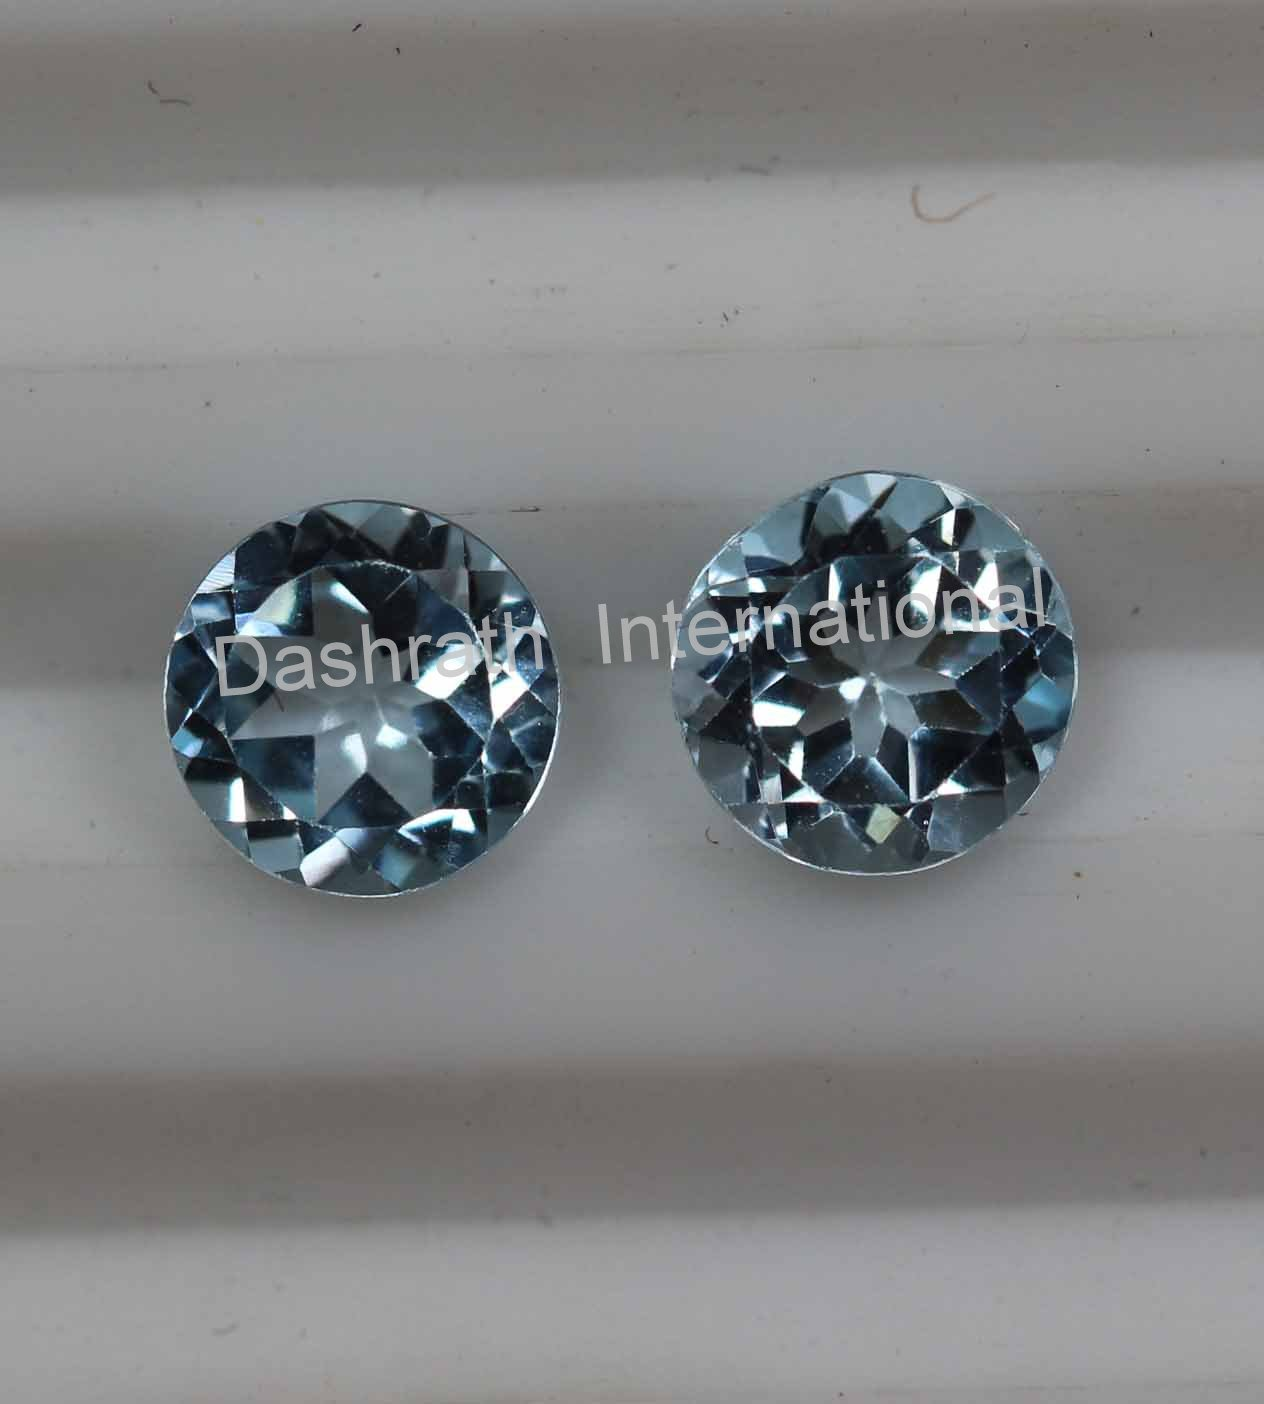 8mmNatural Sky Blue Topaz Faceted Cut Round 1 Piece Blue Color  Top Quality Loose Gemstone